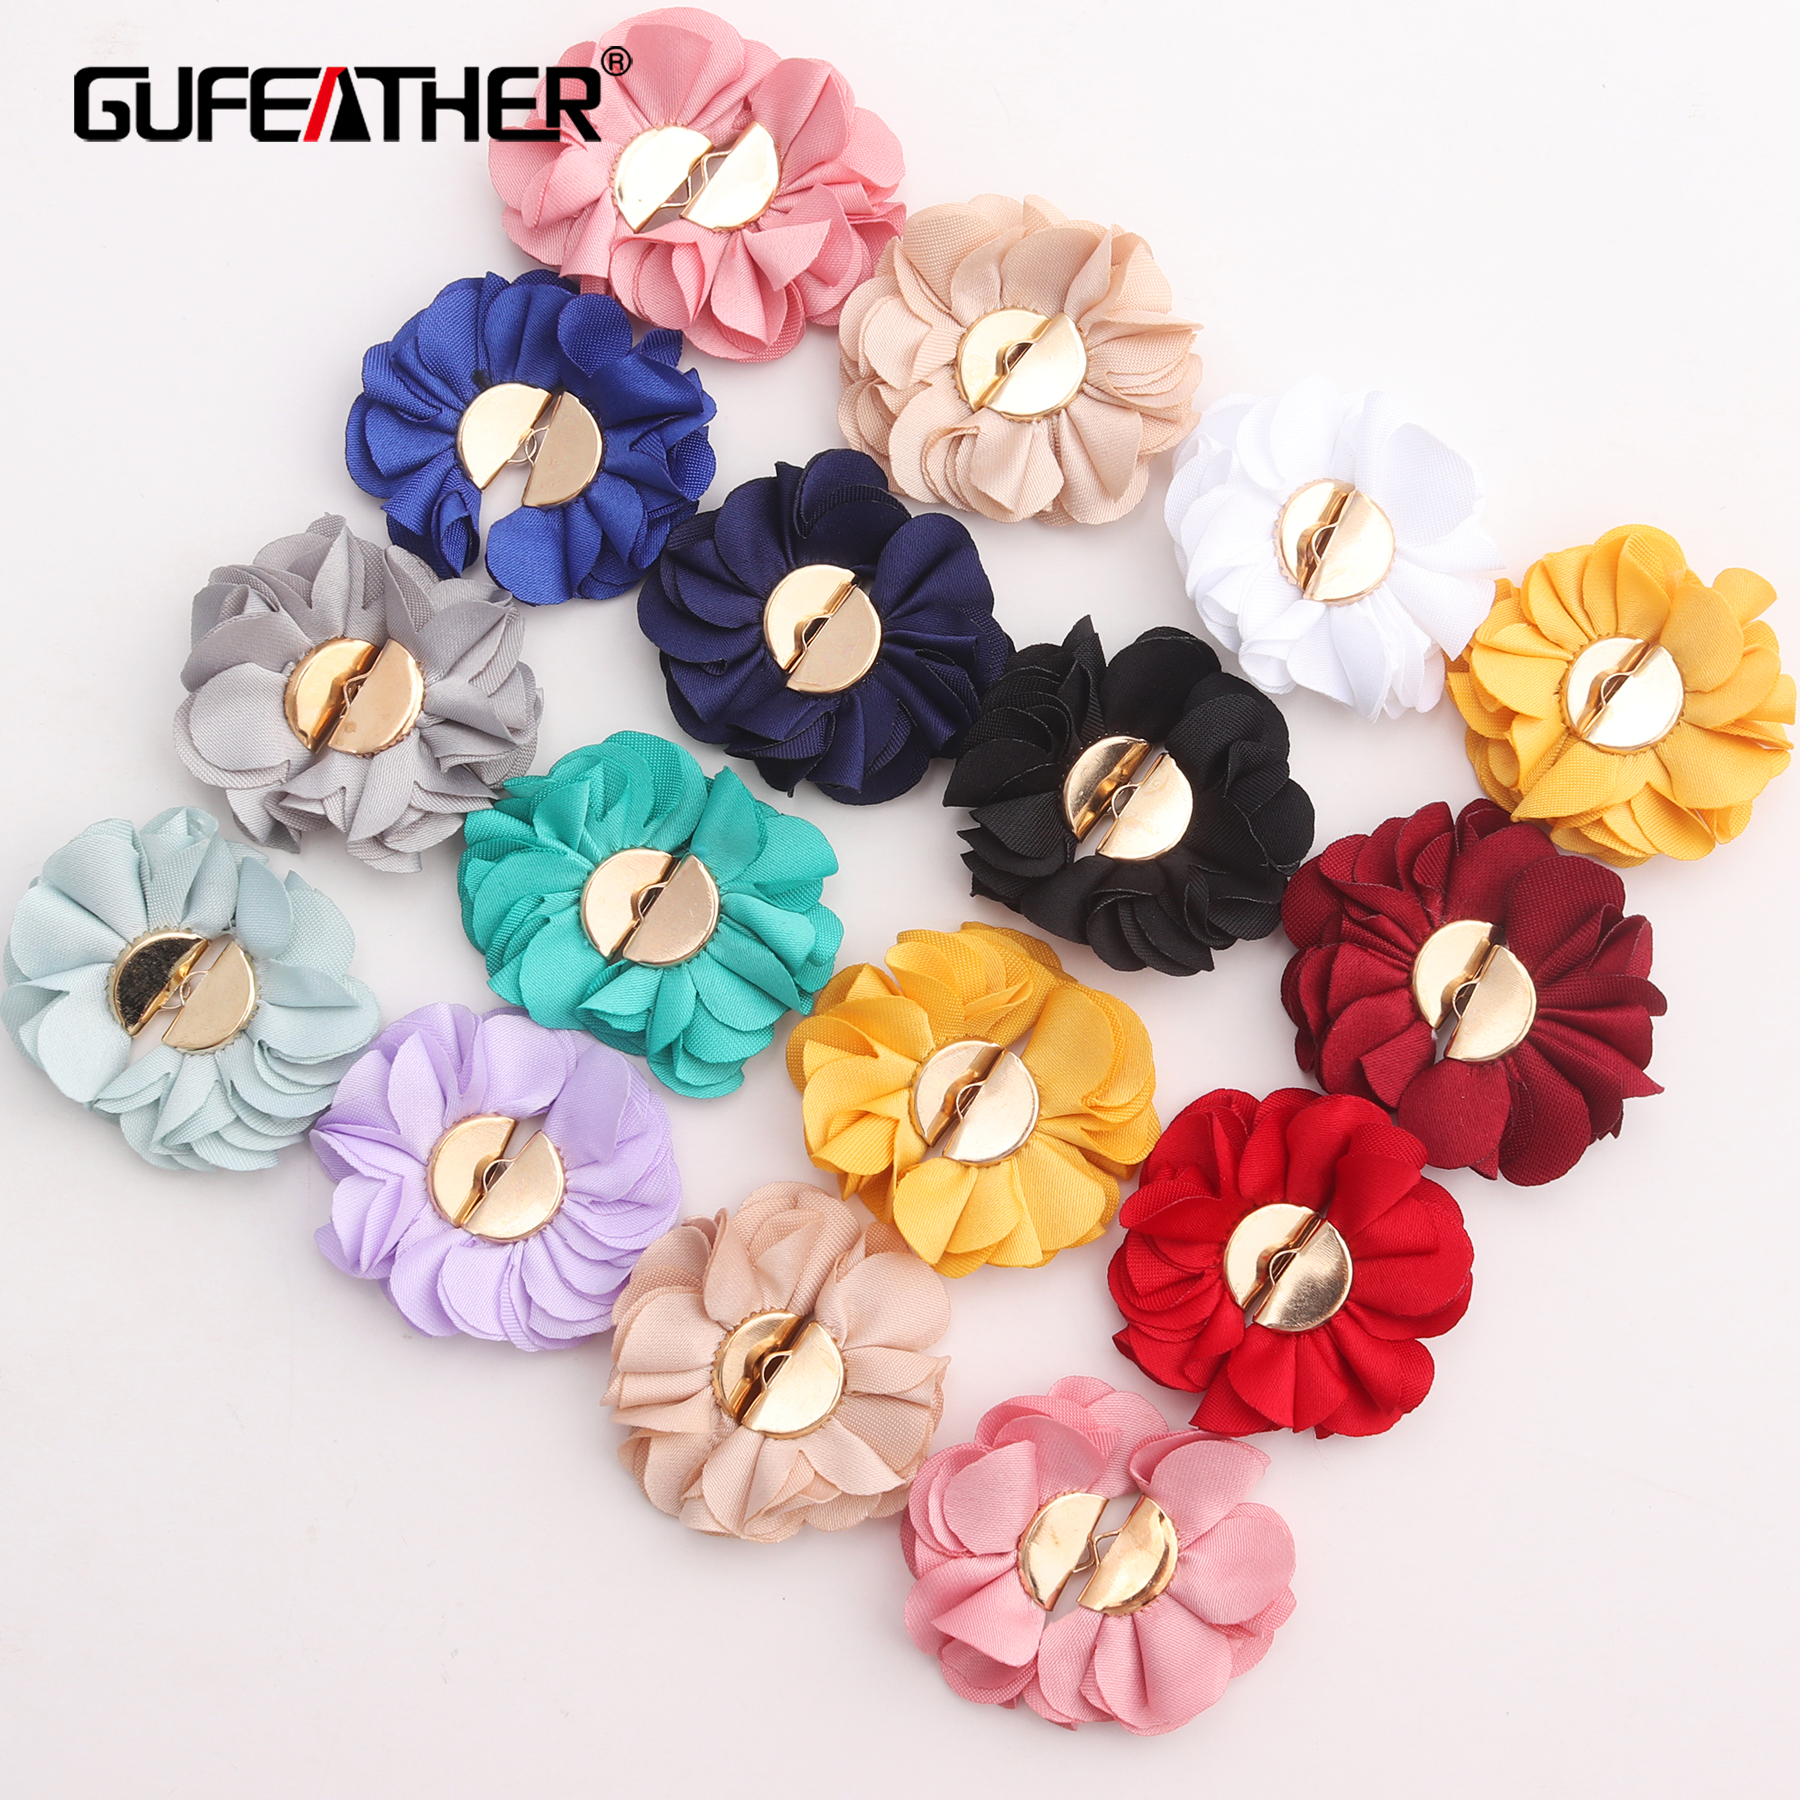 GUFEATHER F130,jewelry Making,earring Accessories,charms,jewelry Findings,flower Jewelry Decoration,diy Earrings,20pcs/lot